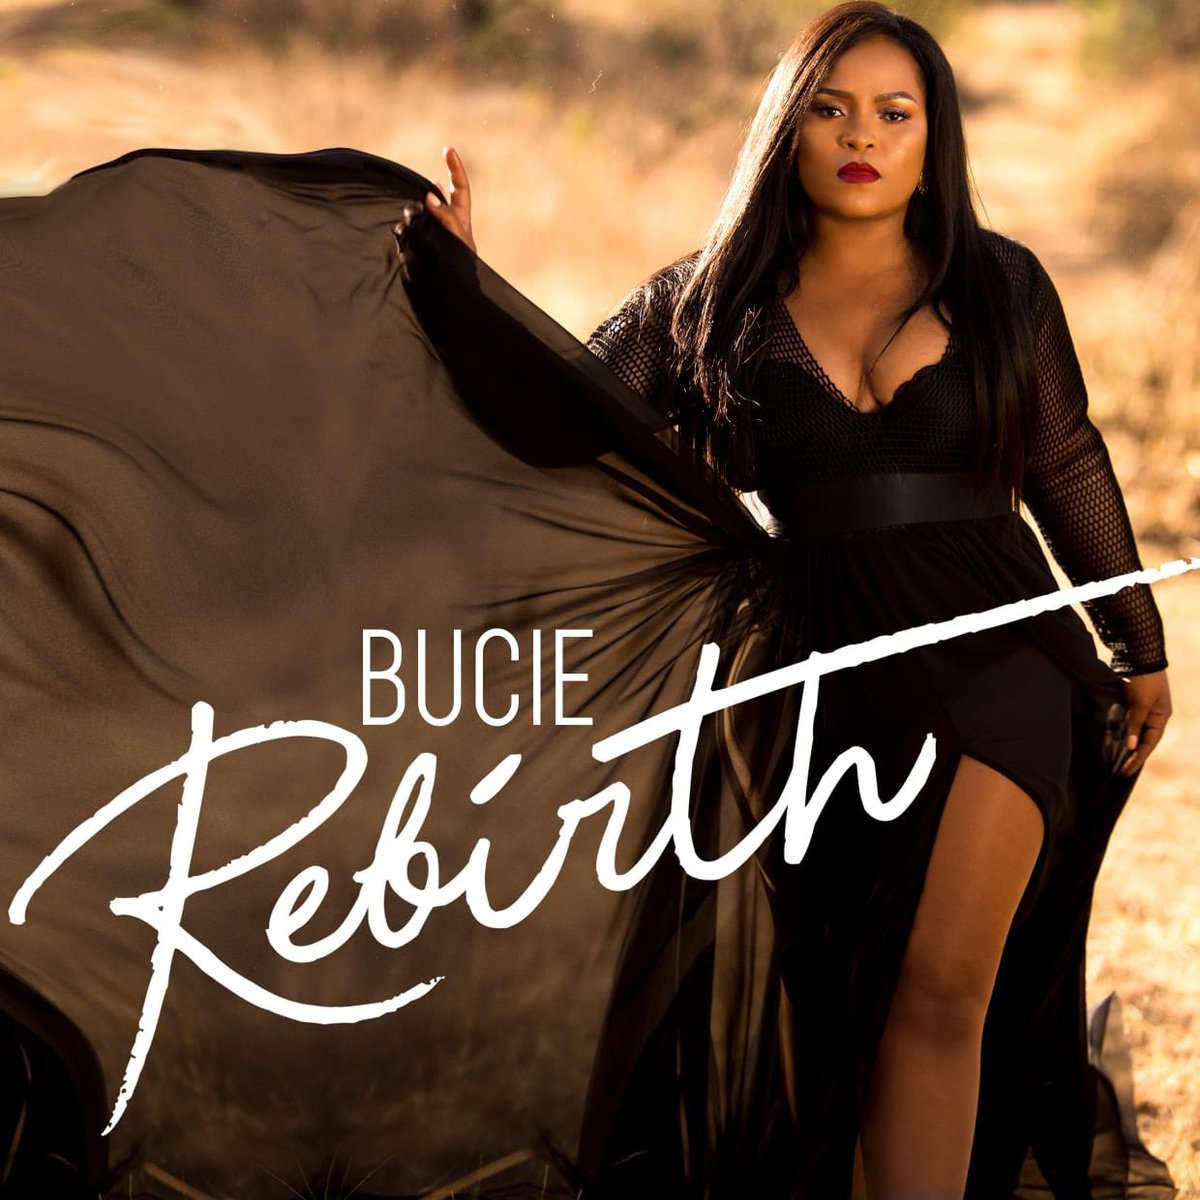 Bucie releases 'Don't Leave Me' from her upcoming album, Rebirth